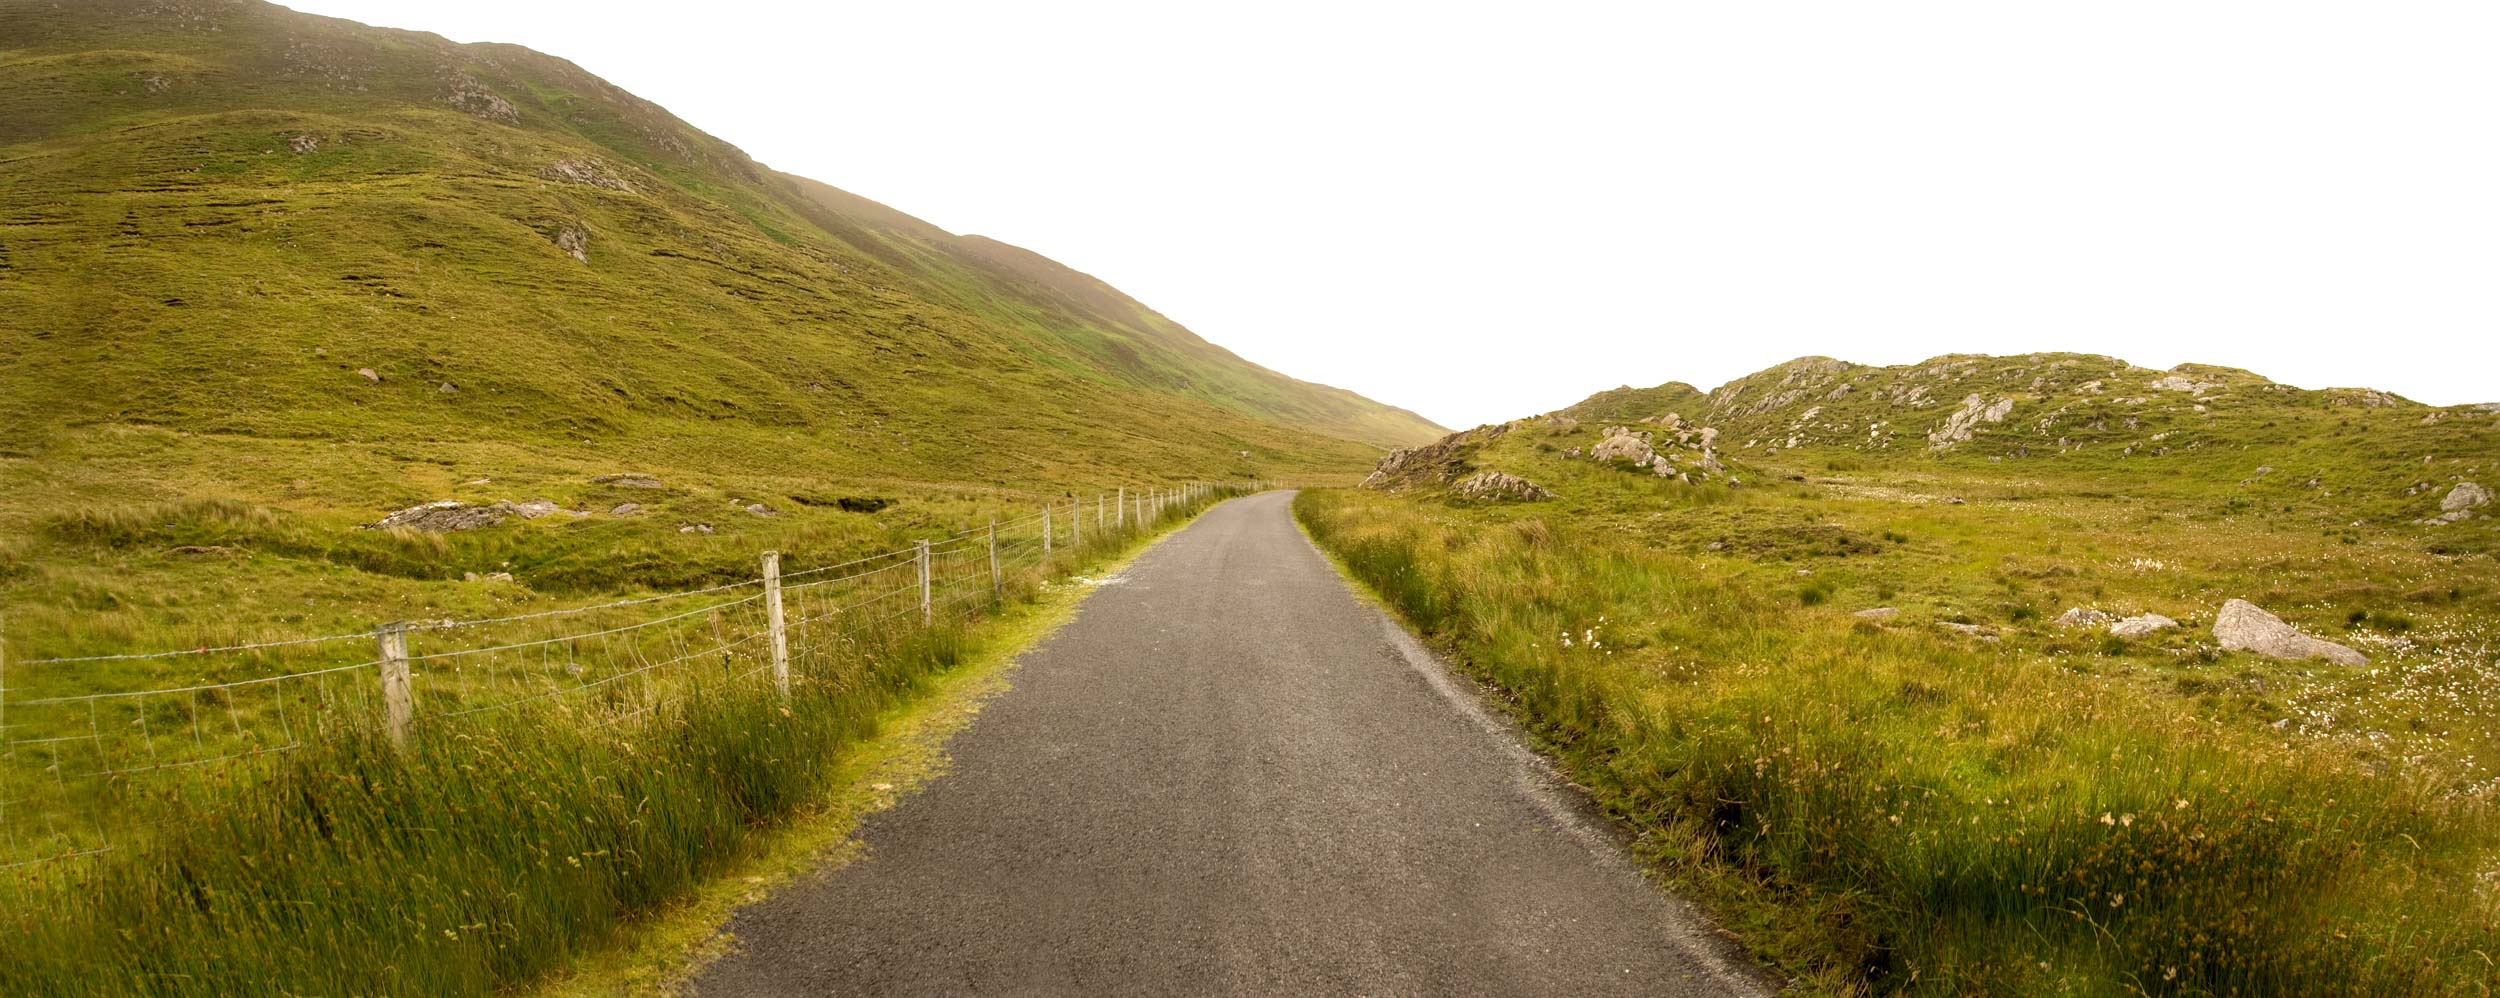 ireland-road-panoramic-1.jpg